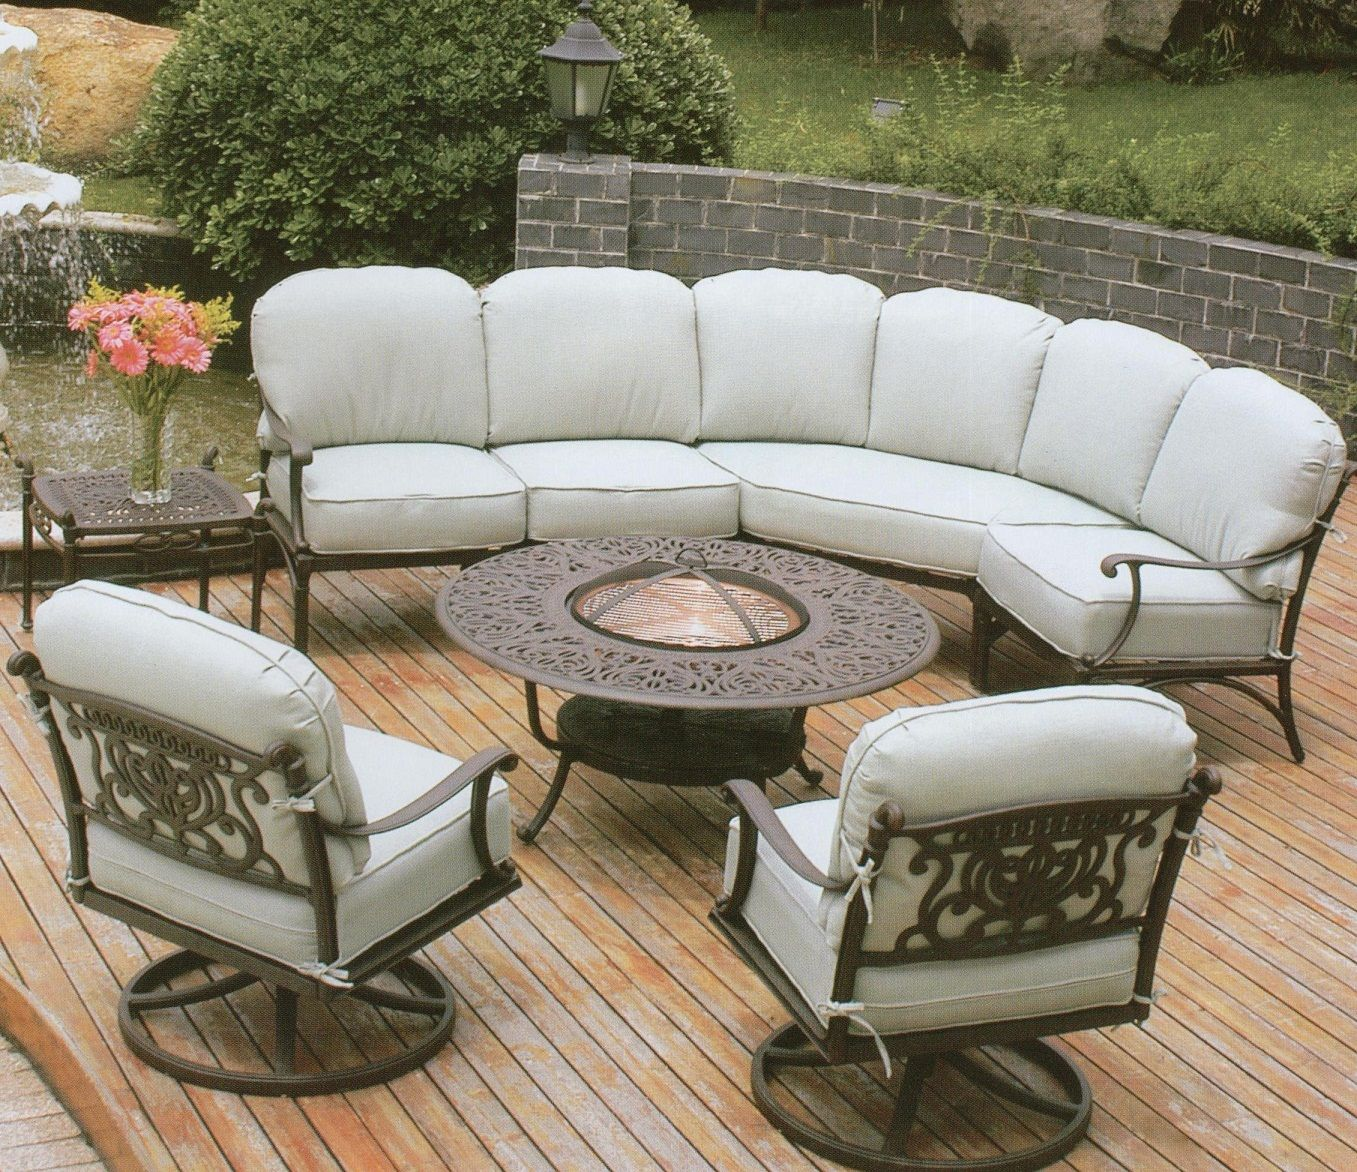 Patio Furniture Clearance Sale For Cheaper Price Sears Patio Furniture Clearance S Clearance Patio Furniture Iron Patio Furniture Wrought Iron Patio Furniture - Royal Garden Furniture Clearance